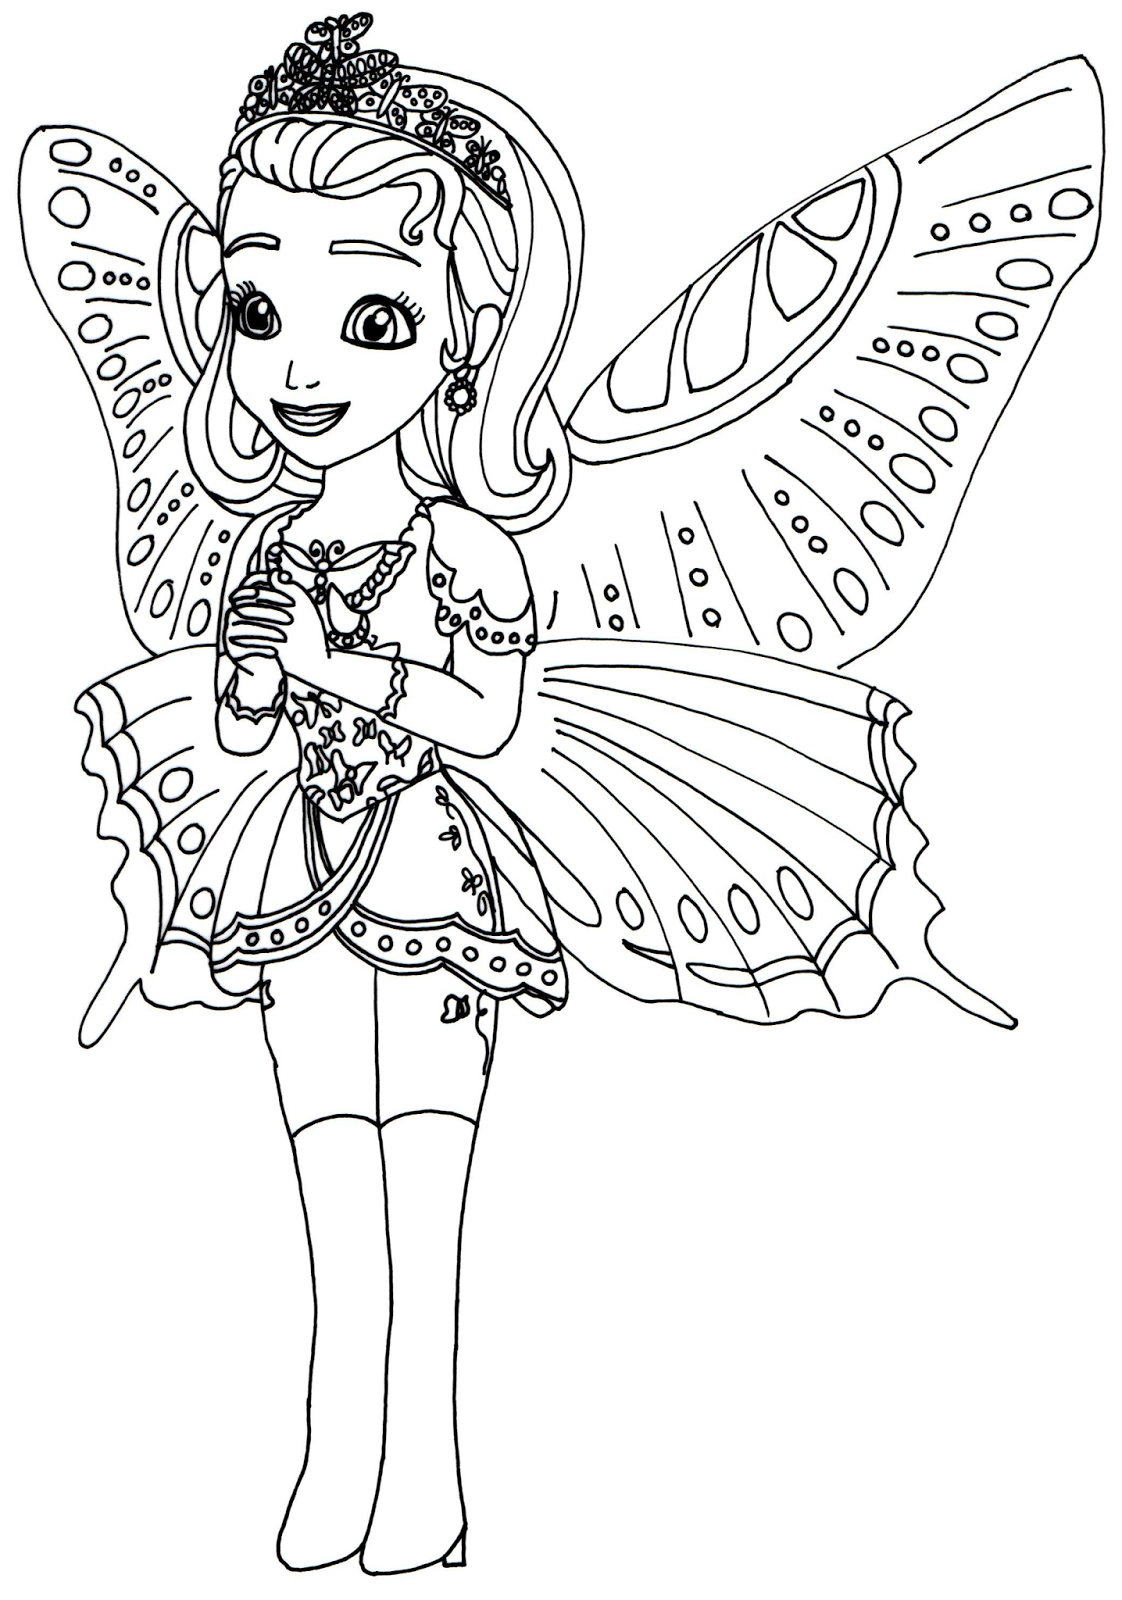 Princess coloring pages blogspot - Princess Butterfly Sofia The First Coloring Page